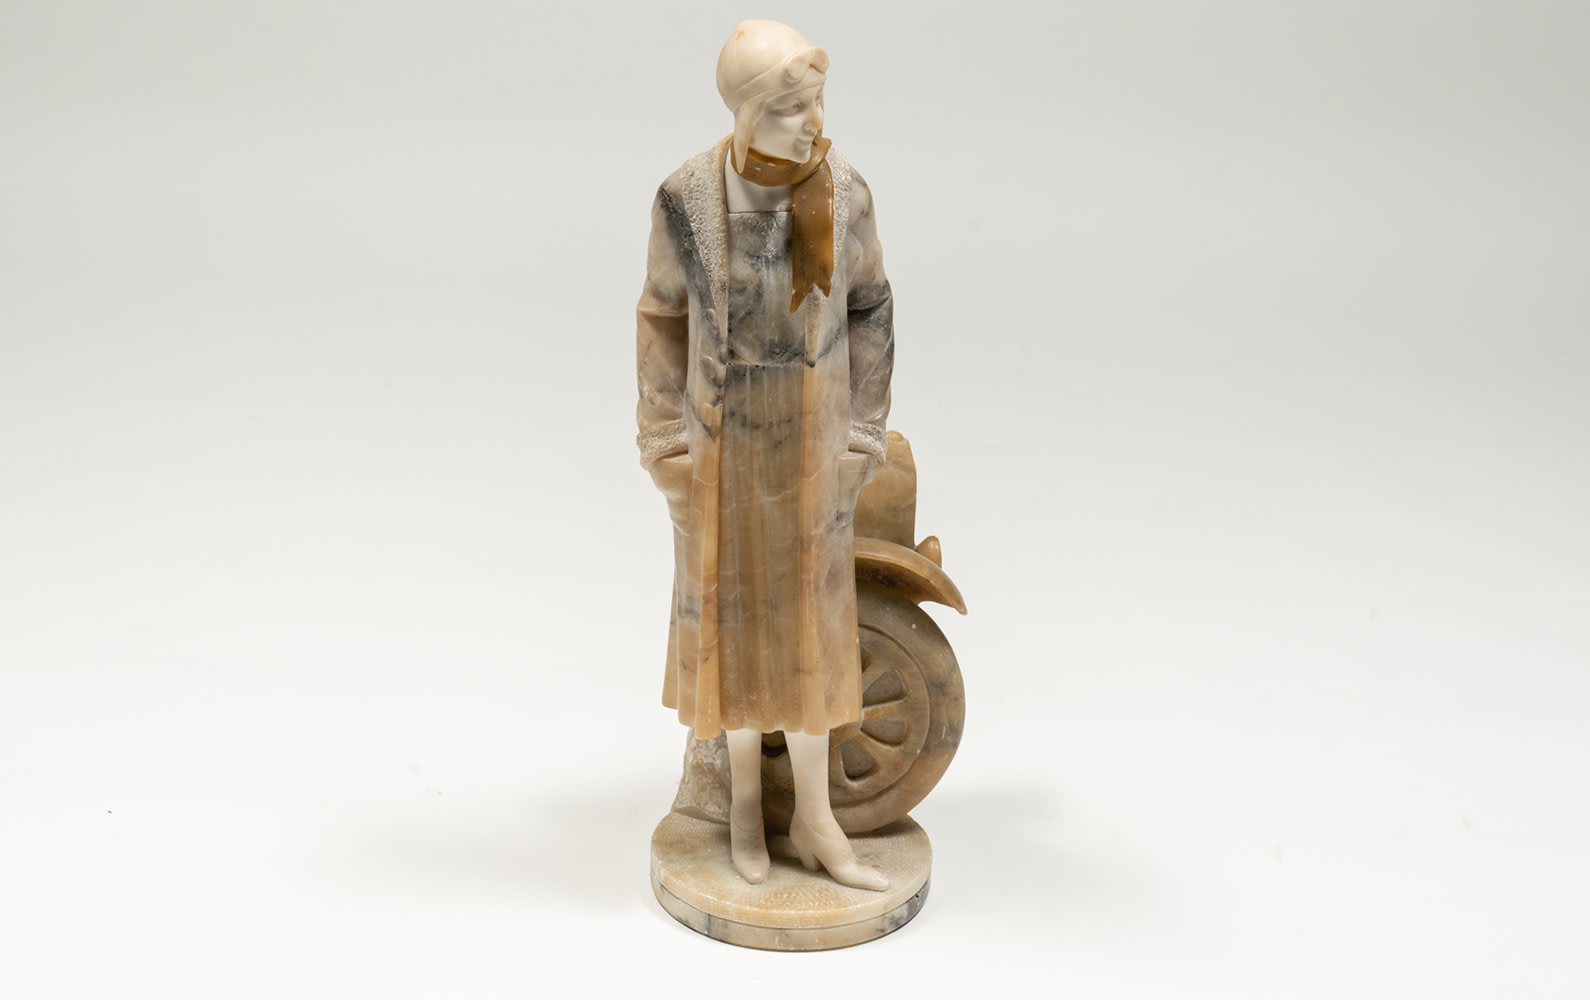 c.Late 1920s–Early 1930s Marble Sculpture of a Female Motorist